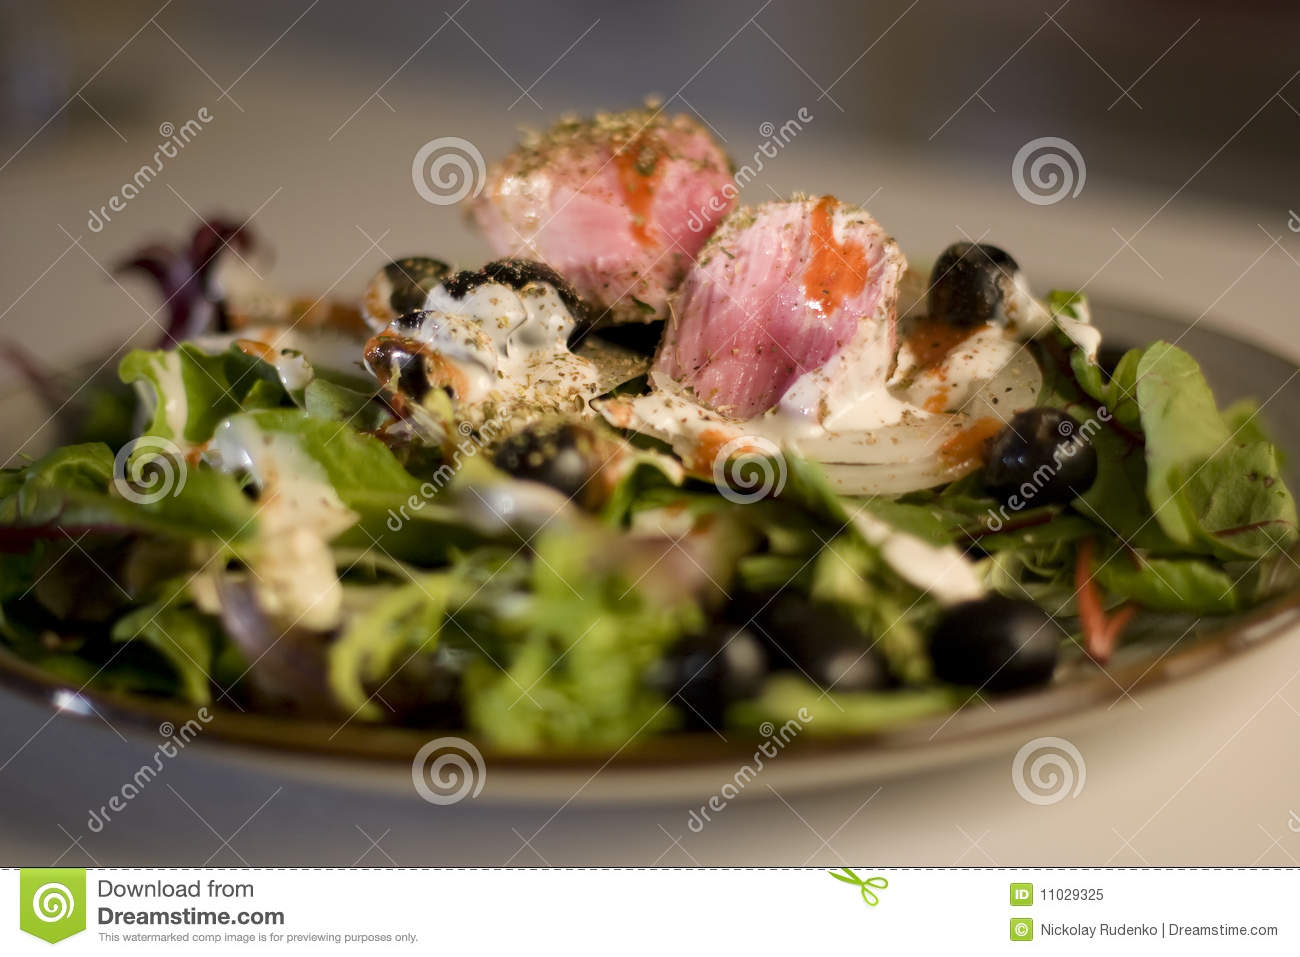 Grilled Tuna Salad Royalty Free Stock Photo - Image: 11029325